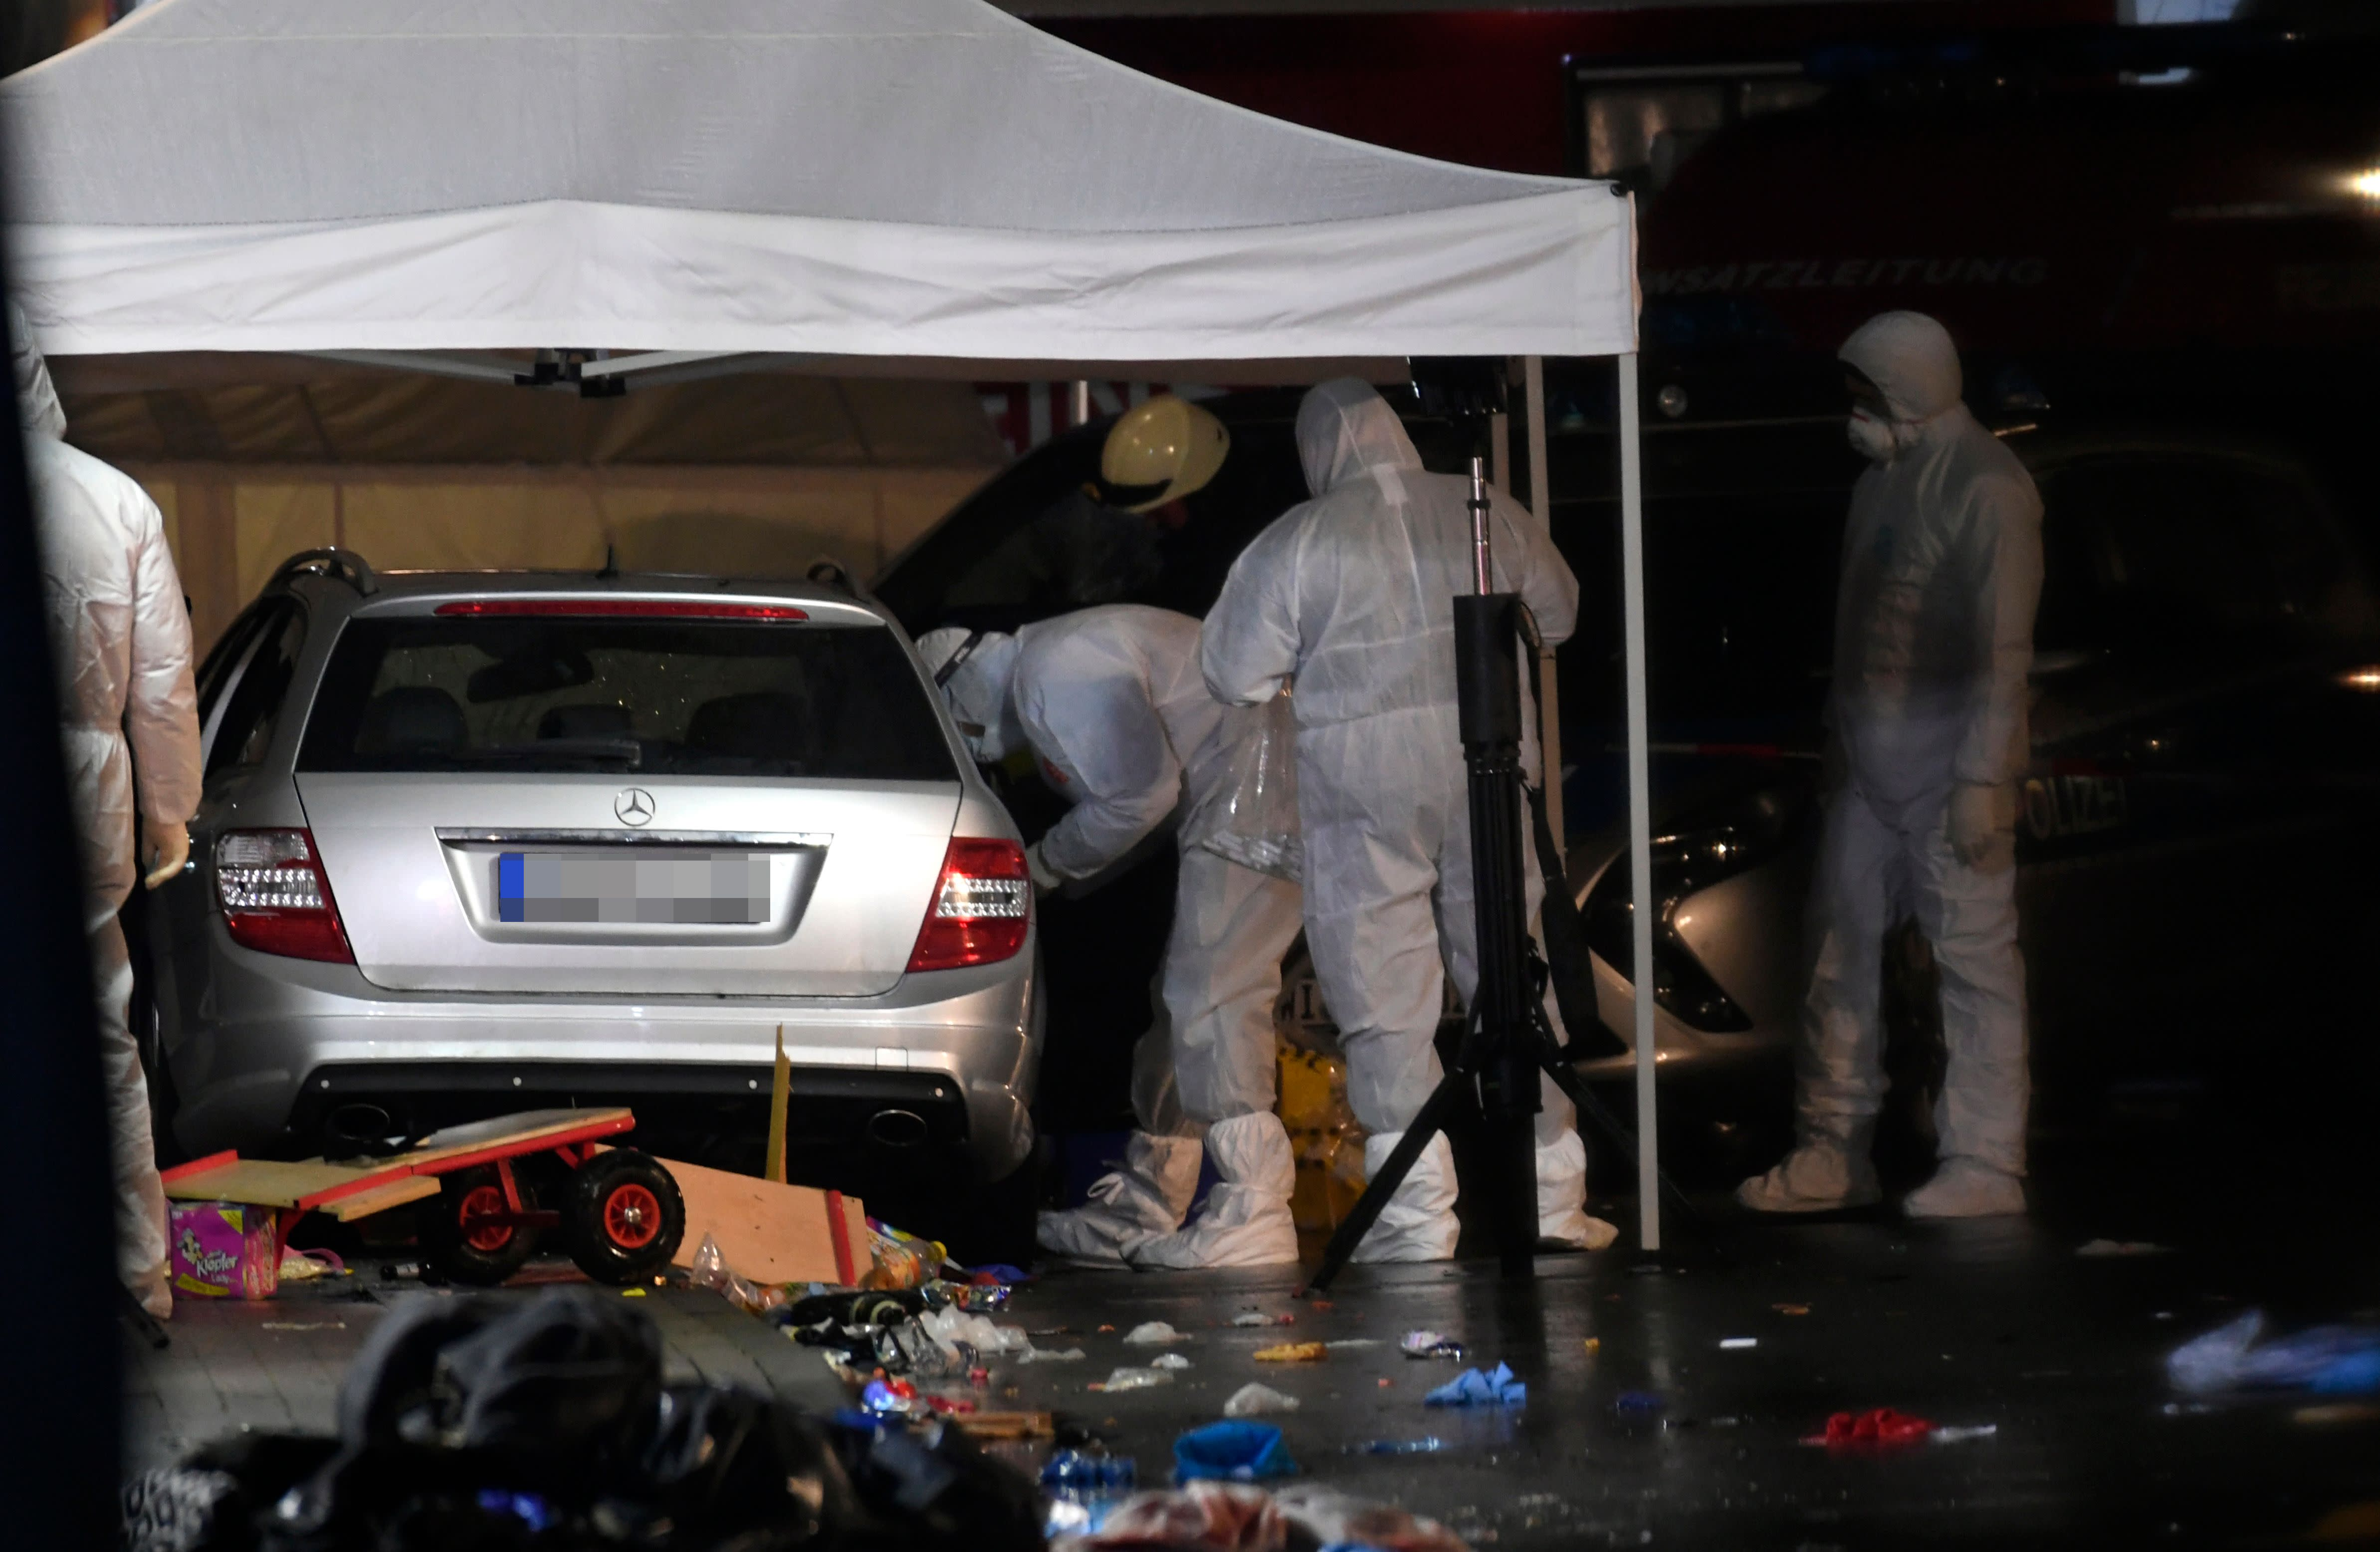 Police officers investigate the car of the man who drove into a carnival procession on February 24, 2020 in Volkmarsen near Kassel, central Germany. - Several people were injured when a car drove into a carnival procession in Volksmarsen, police said, adding that the driver had been arrested. (Photo by INA FASSBENDER / AFP) (Photo by INA FASSBENDER/AFP via Getty Images)